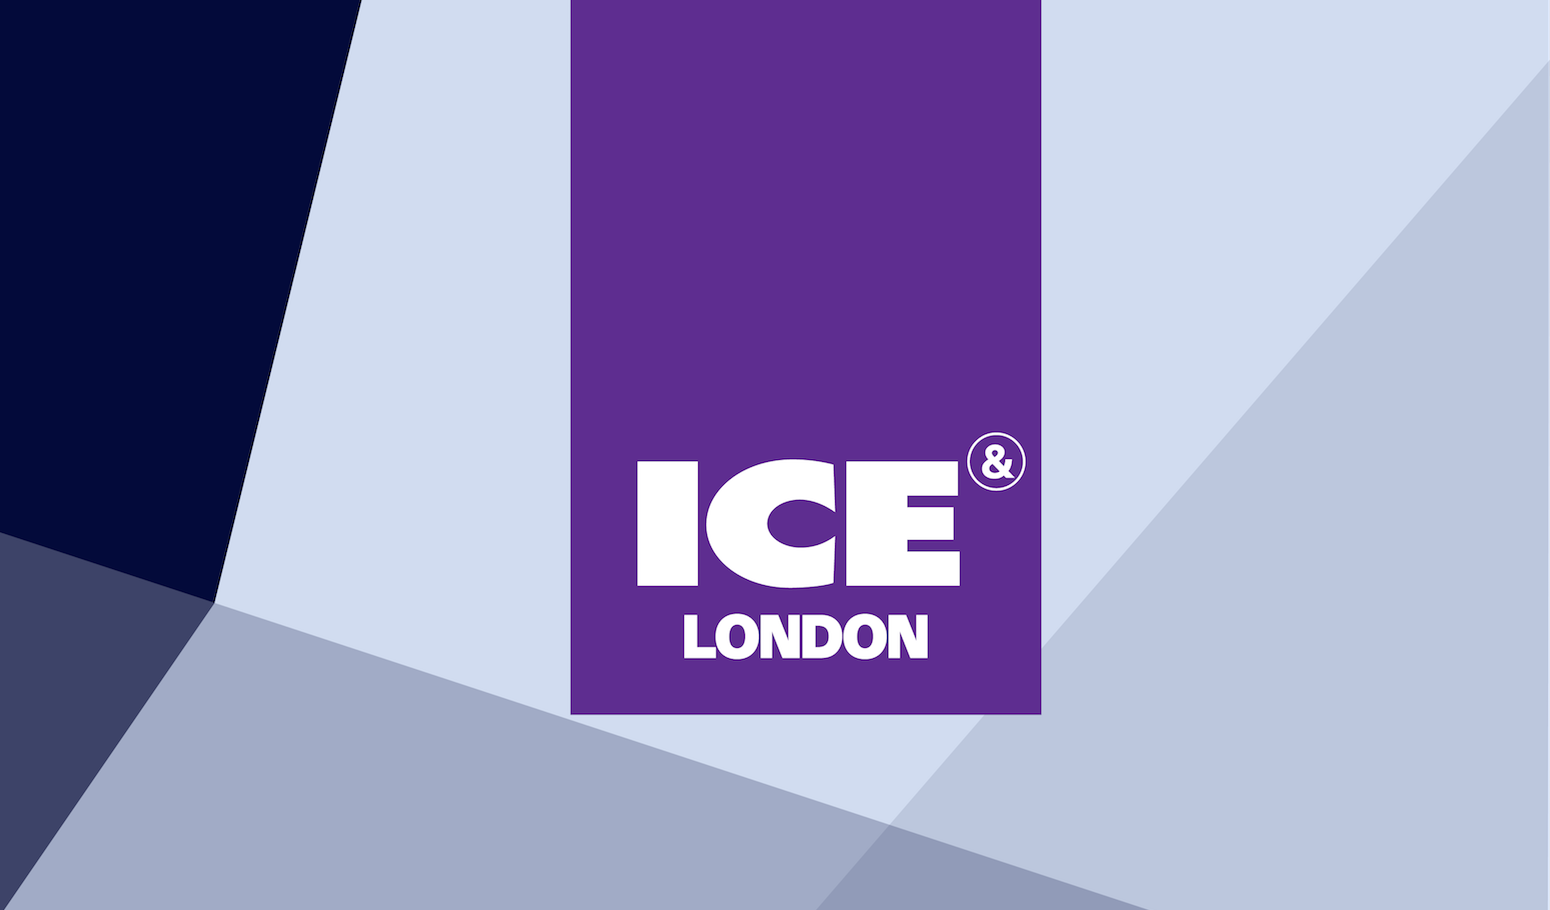 Excited to be attending ICE London, 4-6 February 2020